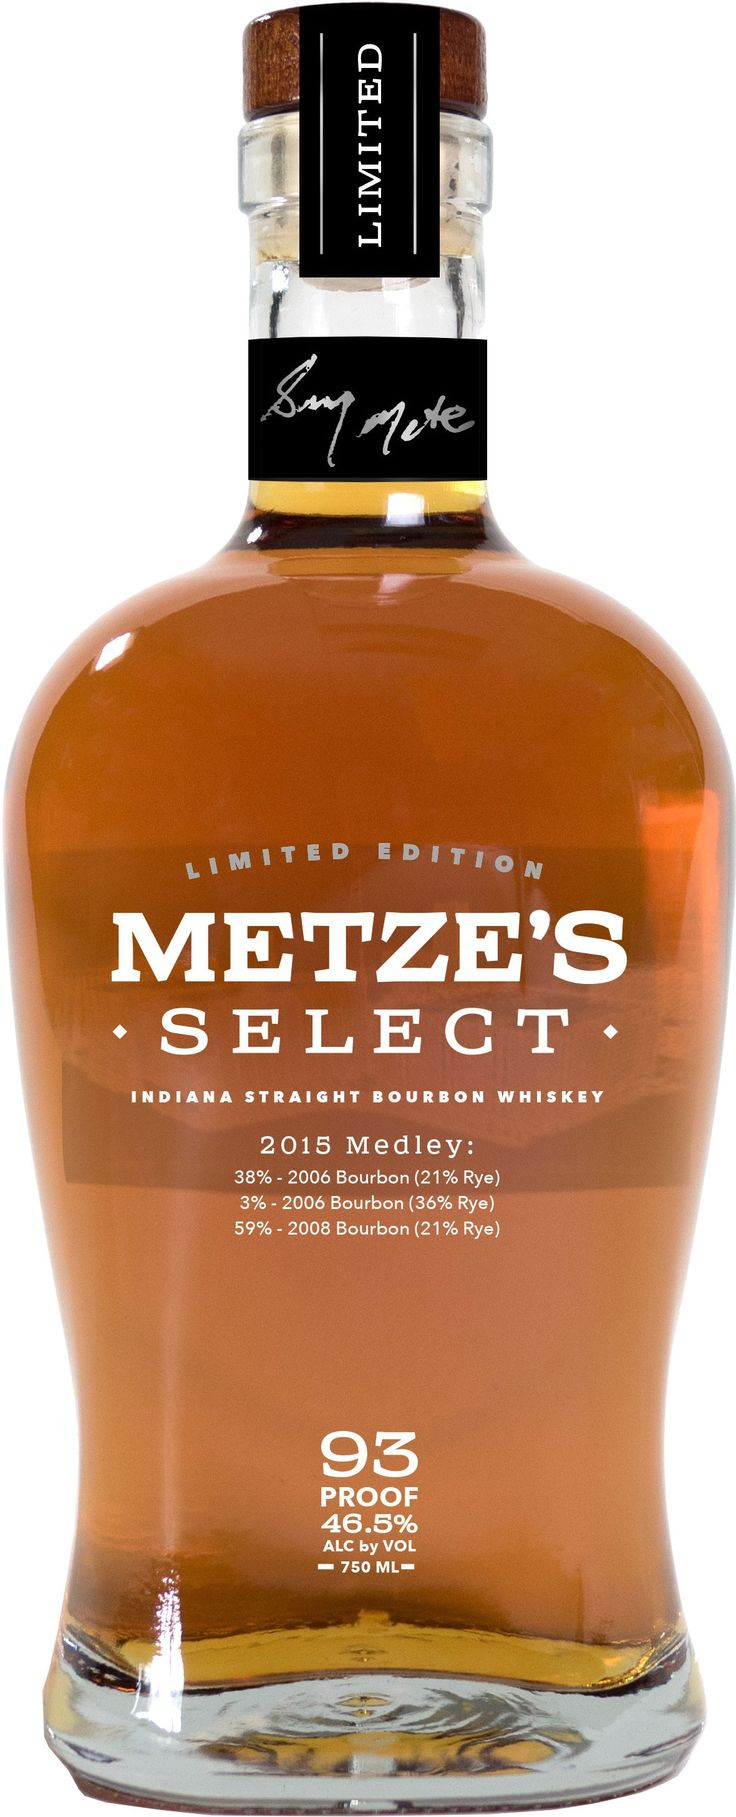 It's finally here. The first widely-available offering from Indiana's MGP distillery is likely to change the Bourbon landscape in the U.S. Price - $80.